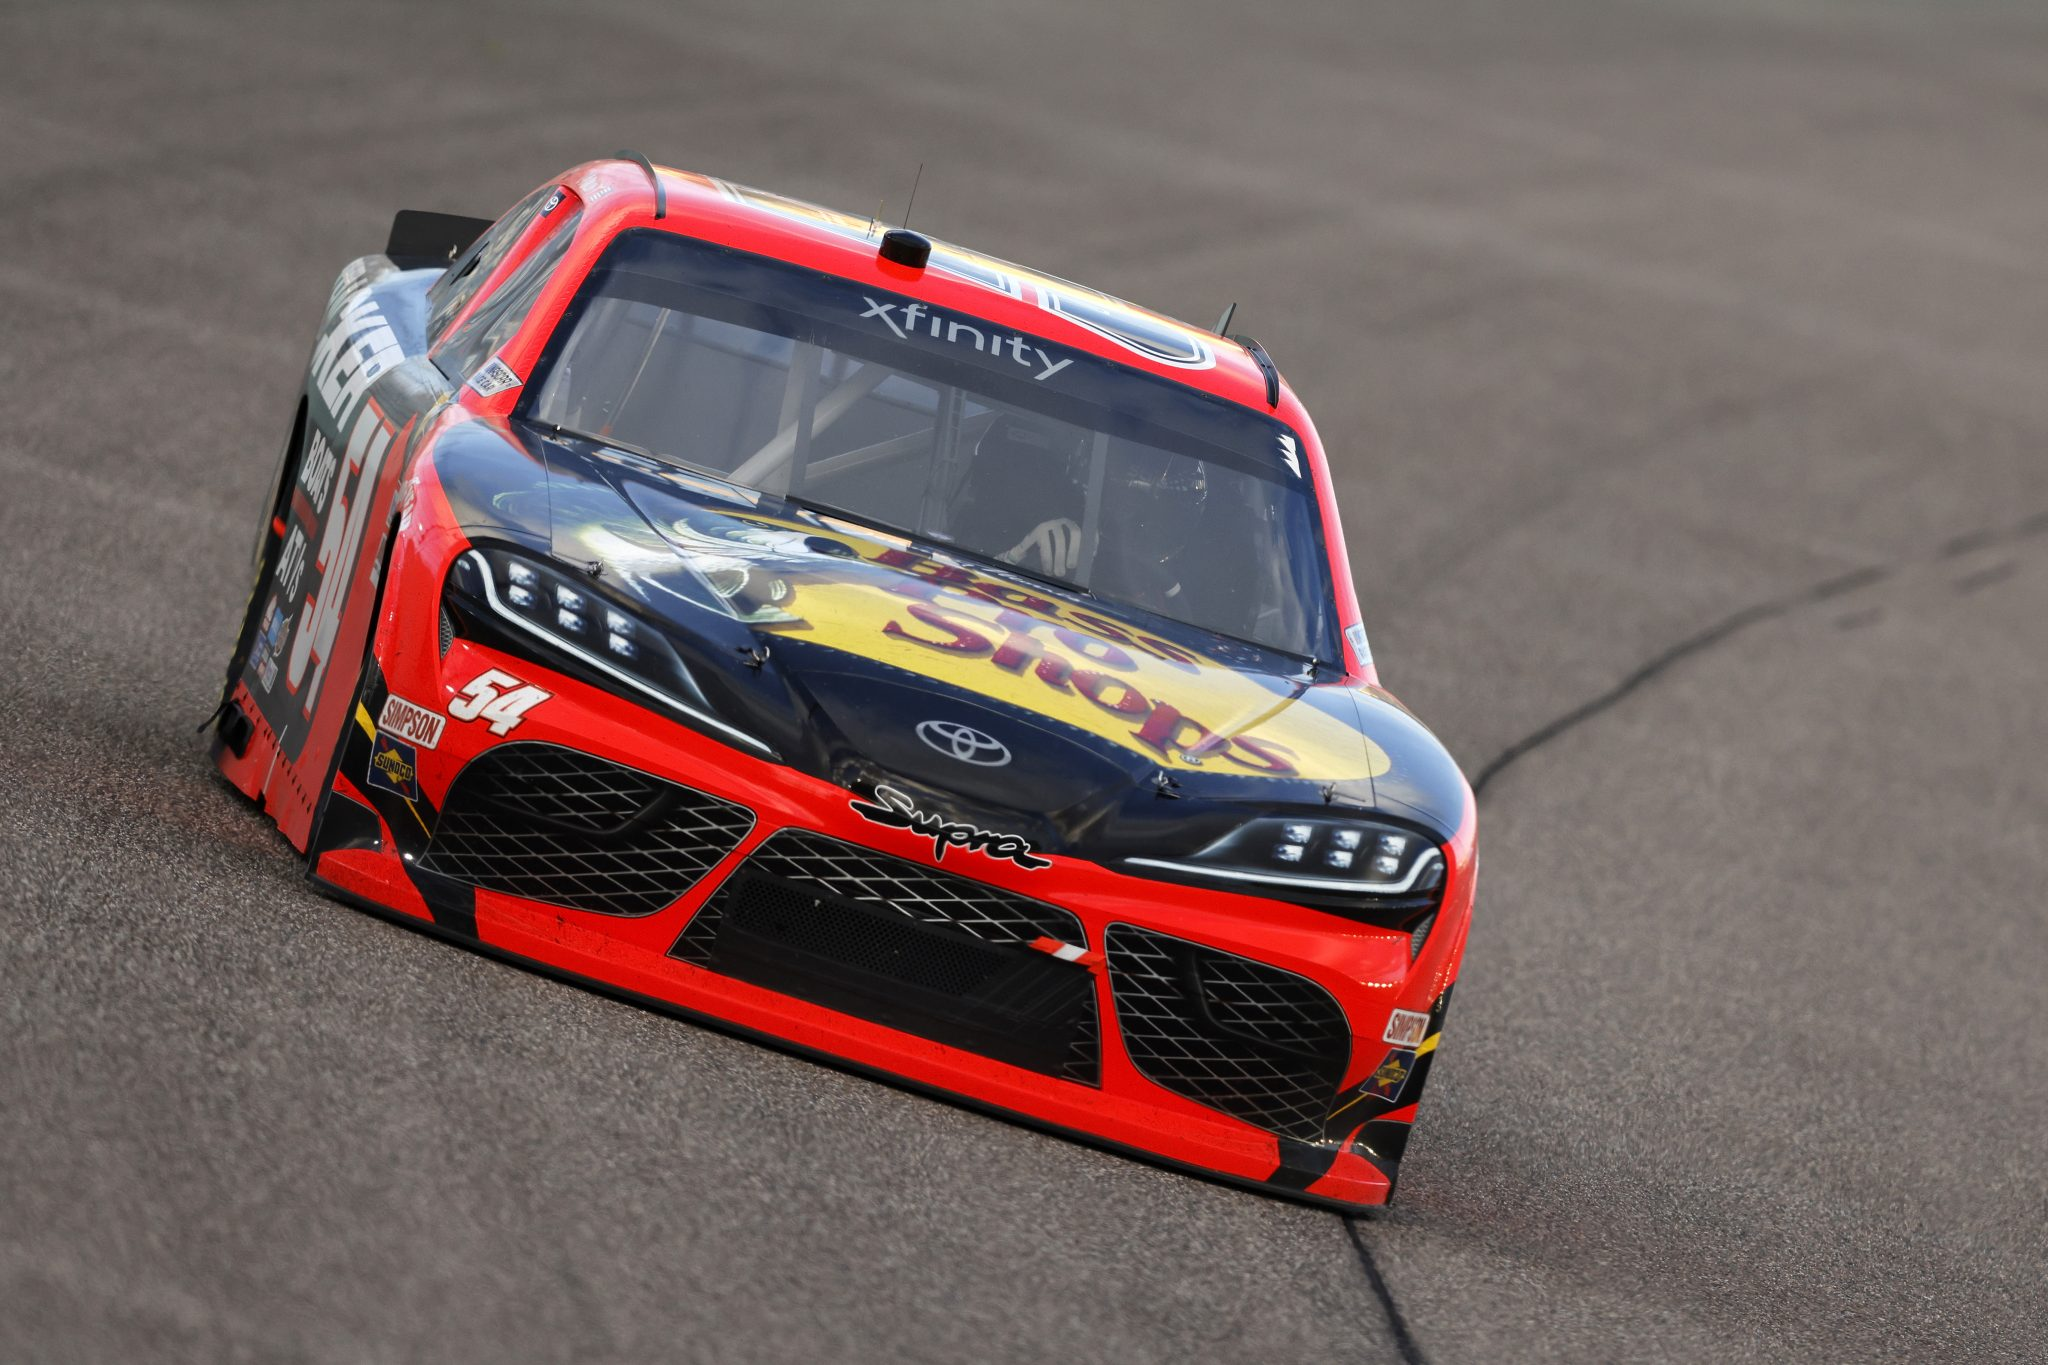 HOMESTEAD, FLORIDA - FEBRUARY 27: Ty Dillon, driver of the #54 Bass Pro Shops Toyota, drives during the NASCAR Xfinity Series Contender Boats 250 at Homestead-Miami Speedway on February 27, 2021 in Homestead, Florida. (Photo by Michael Reaves/Getty Images) | Getty Images